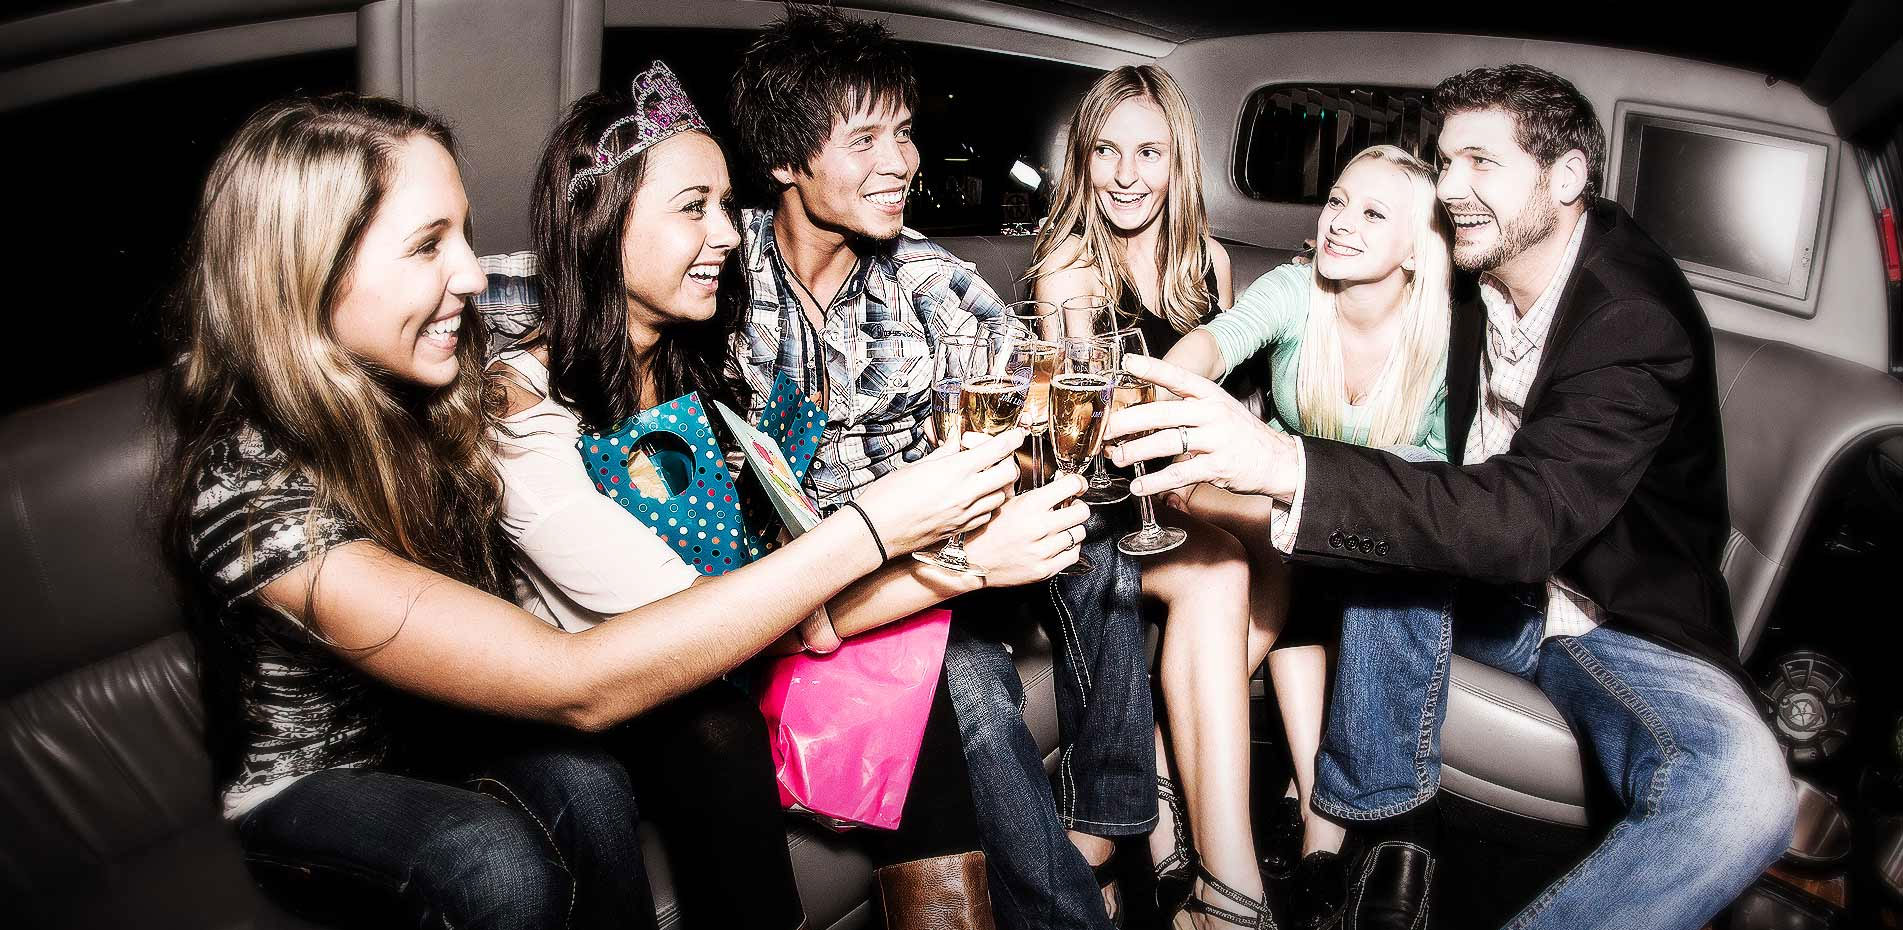 Image result for limo party